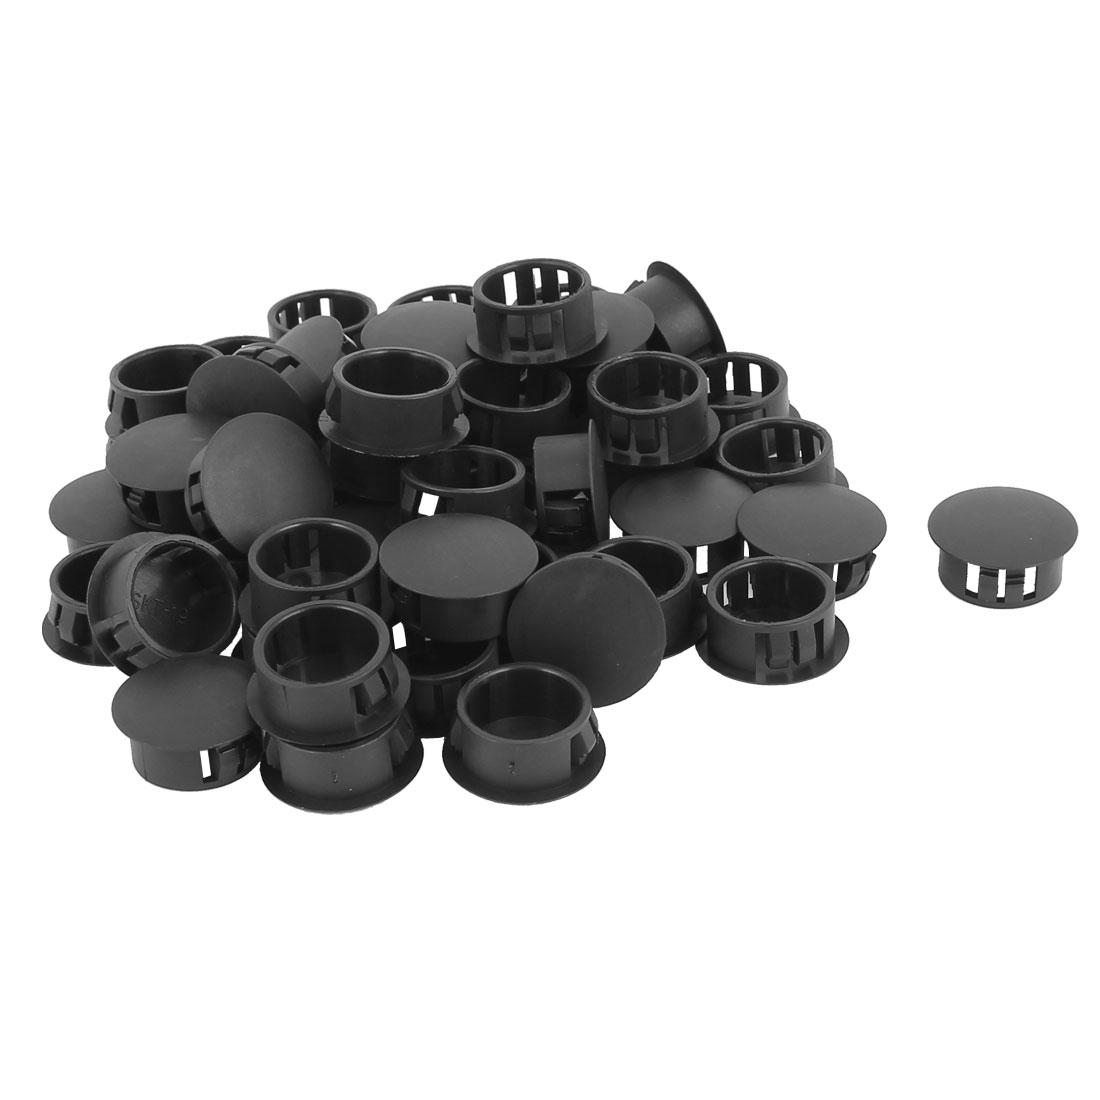 SKT-19 Plastic 19mm Dia Snap in Type Locking Hole Connectors Button Cover 50pcs